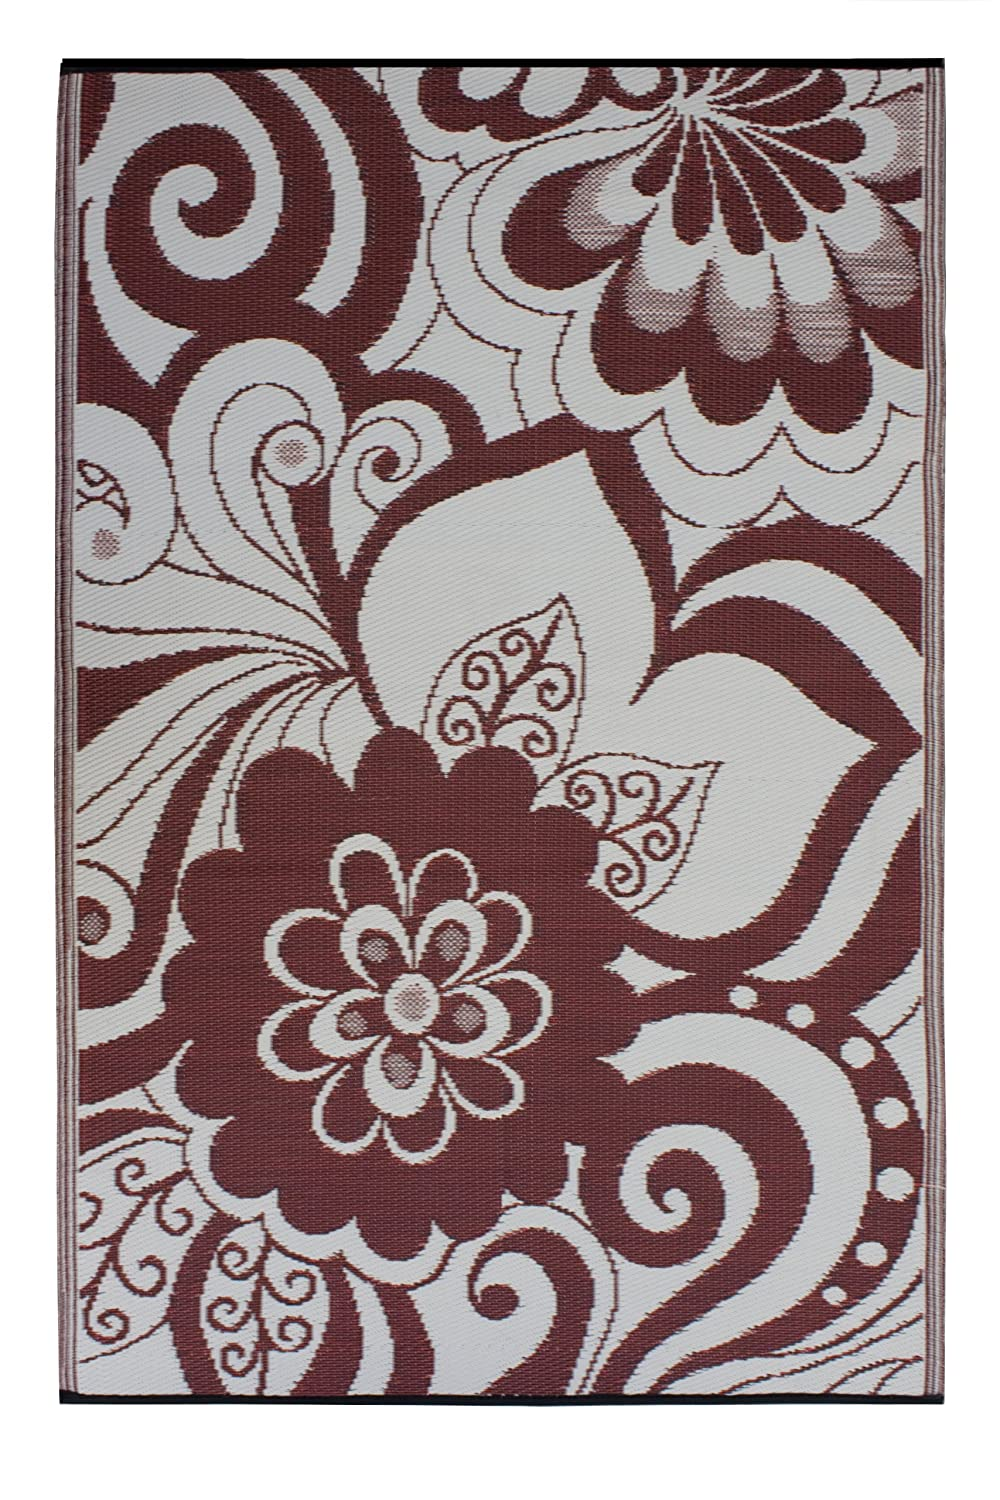 Fab Habitat Maui Indoor/Outdoor Rug, Cranberry Red and Cream